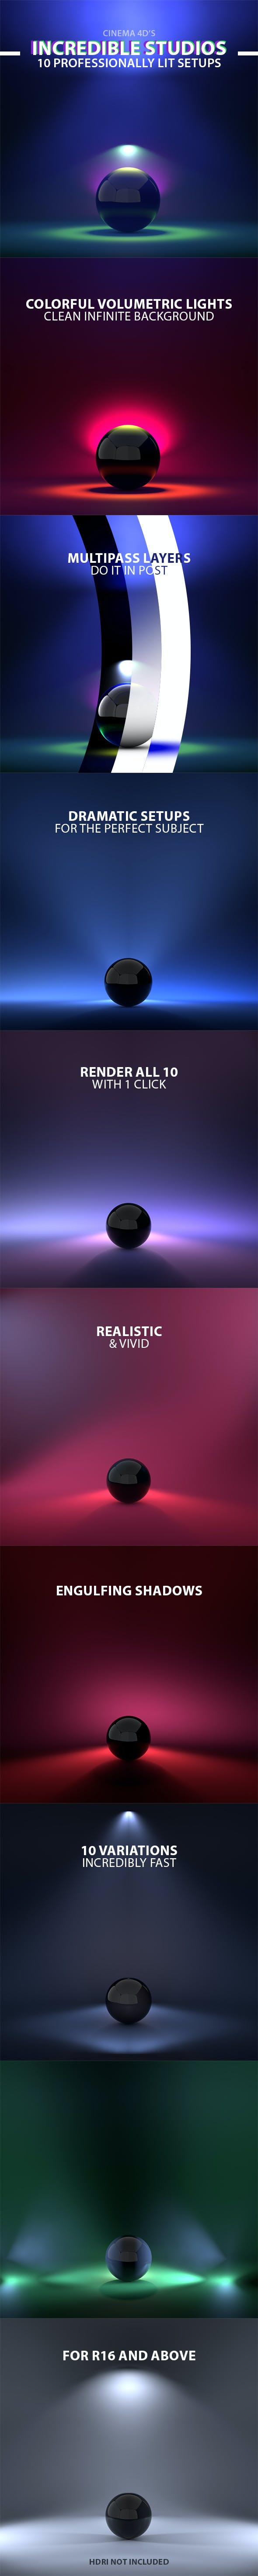 Incredible Studios - 10 Cinema 4D Light Setups - 3DOcean Item for Sale